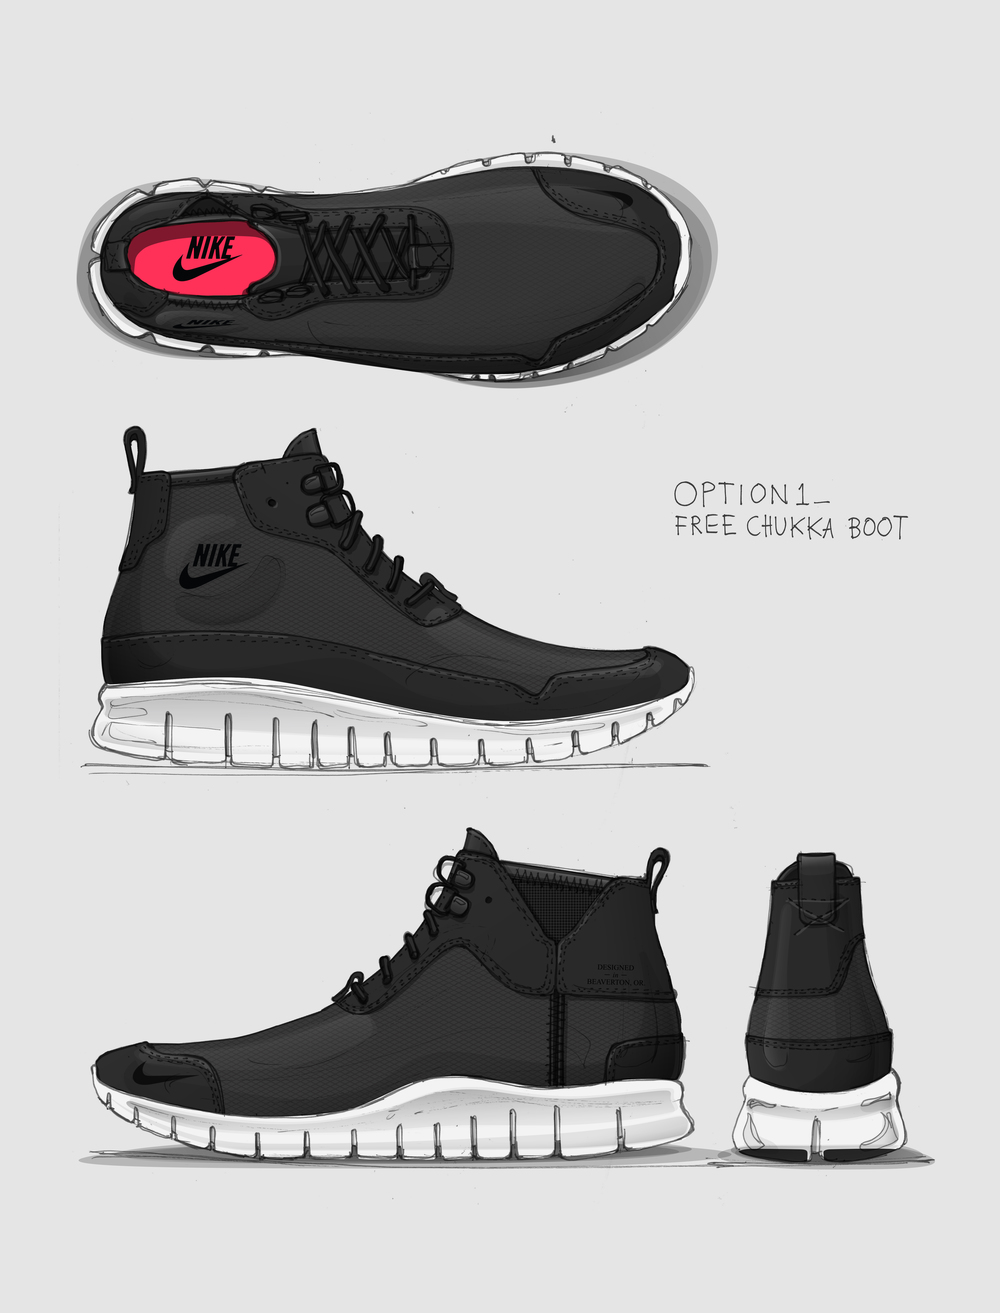 Boot design by nike - I Took Photos Of A Taped Up Last And Sketched Directly Over It To Translate Doodles To Designs With Authentic Proportion These Sketches Led To Three Design